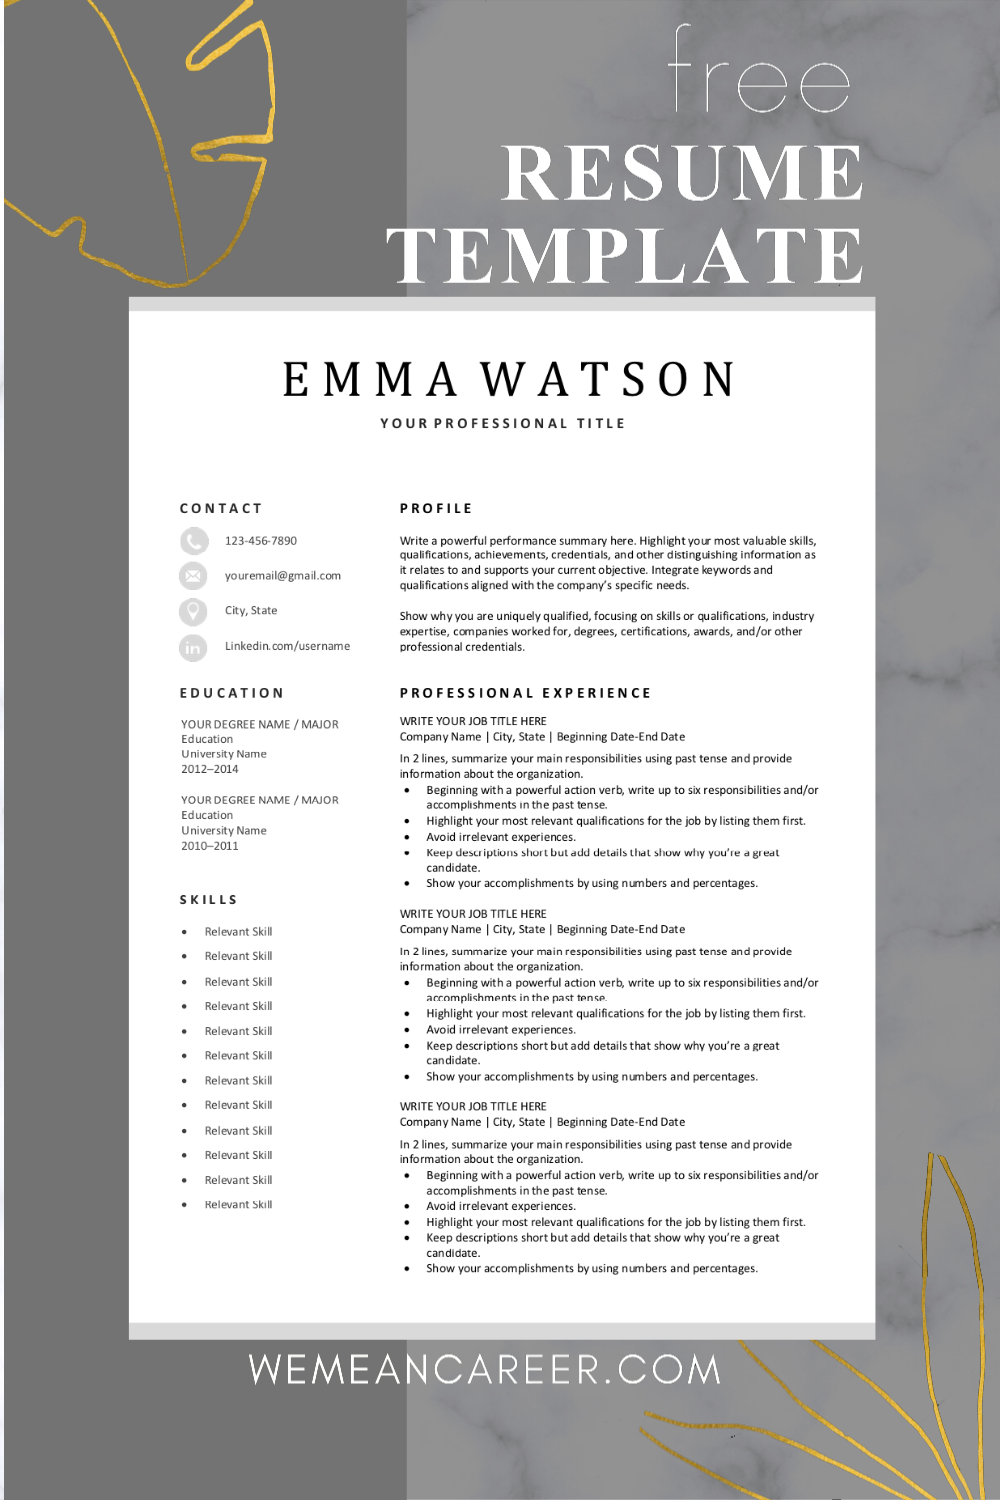 Modern Resume Template Download For Free In 2020 Downloadable Resume Template Resume Template Modern Resume Template Free